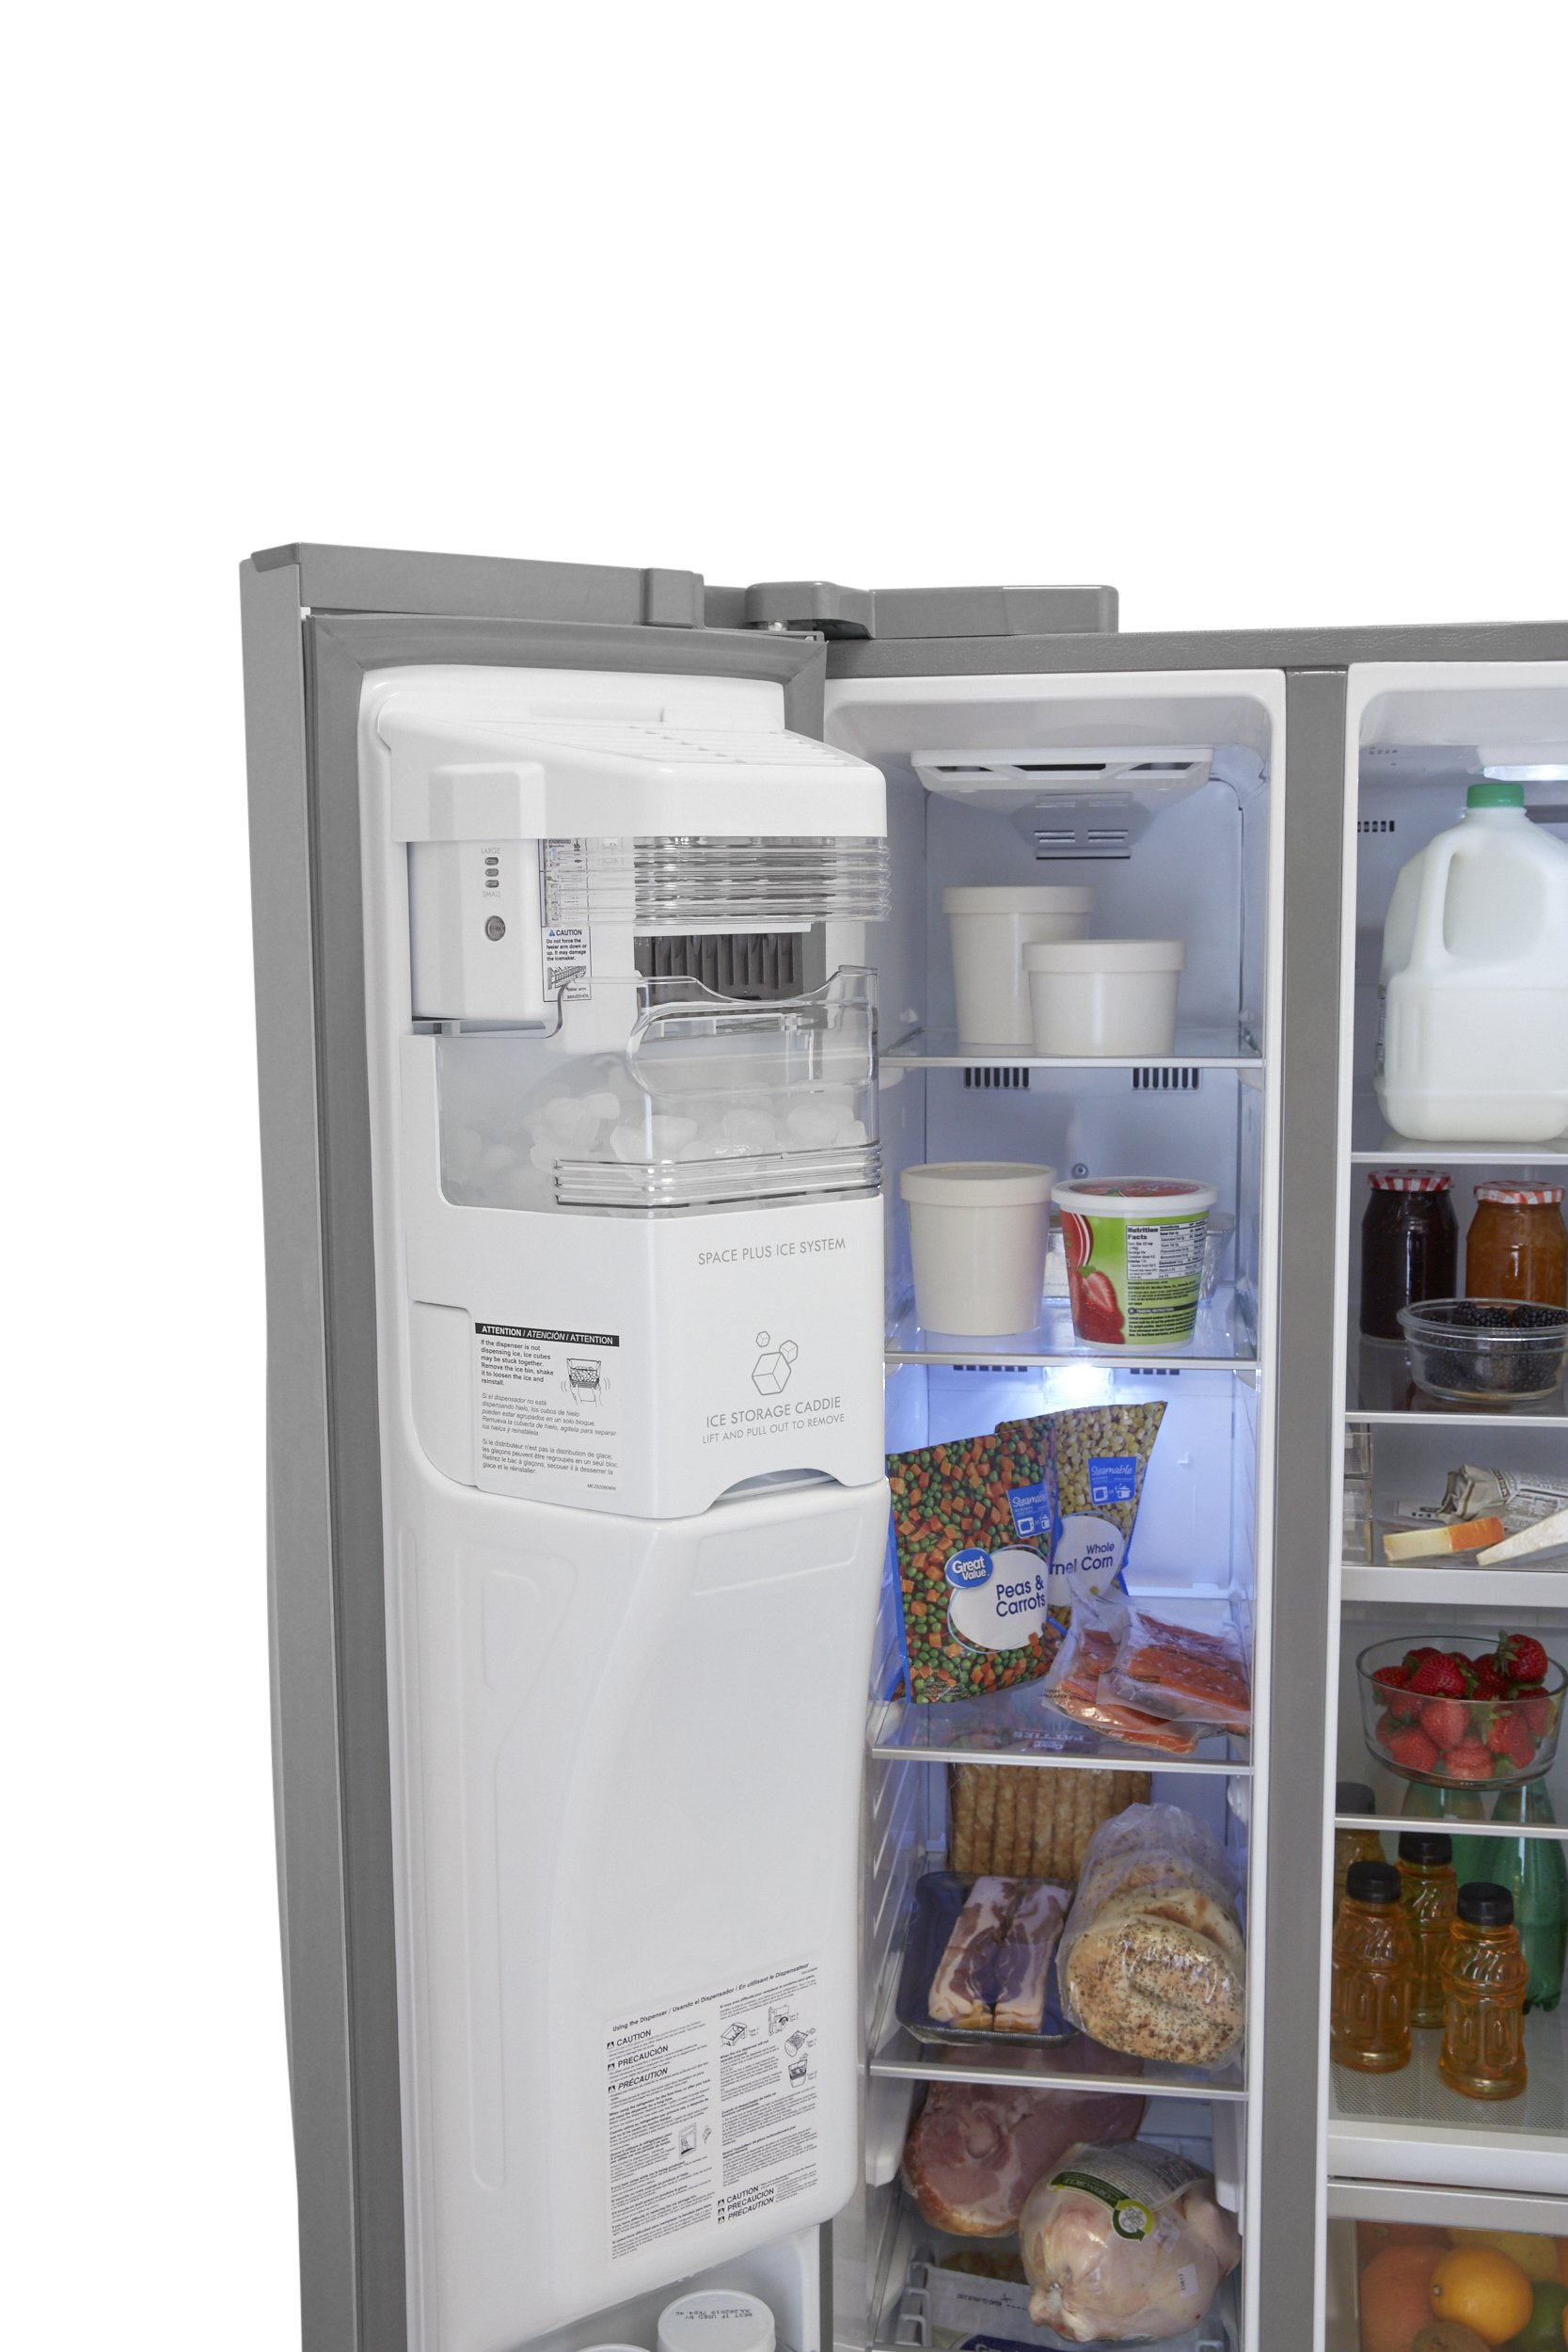 Kenmore Elite 51823 21.9 cu. ft. Side-by-Side Refrigerator in Stainless Steel, includes delivery and hookup (Available in select cities only) by Kenmore (Image #8)